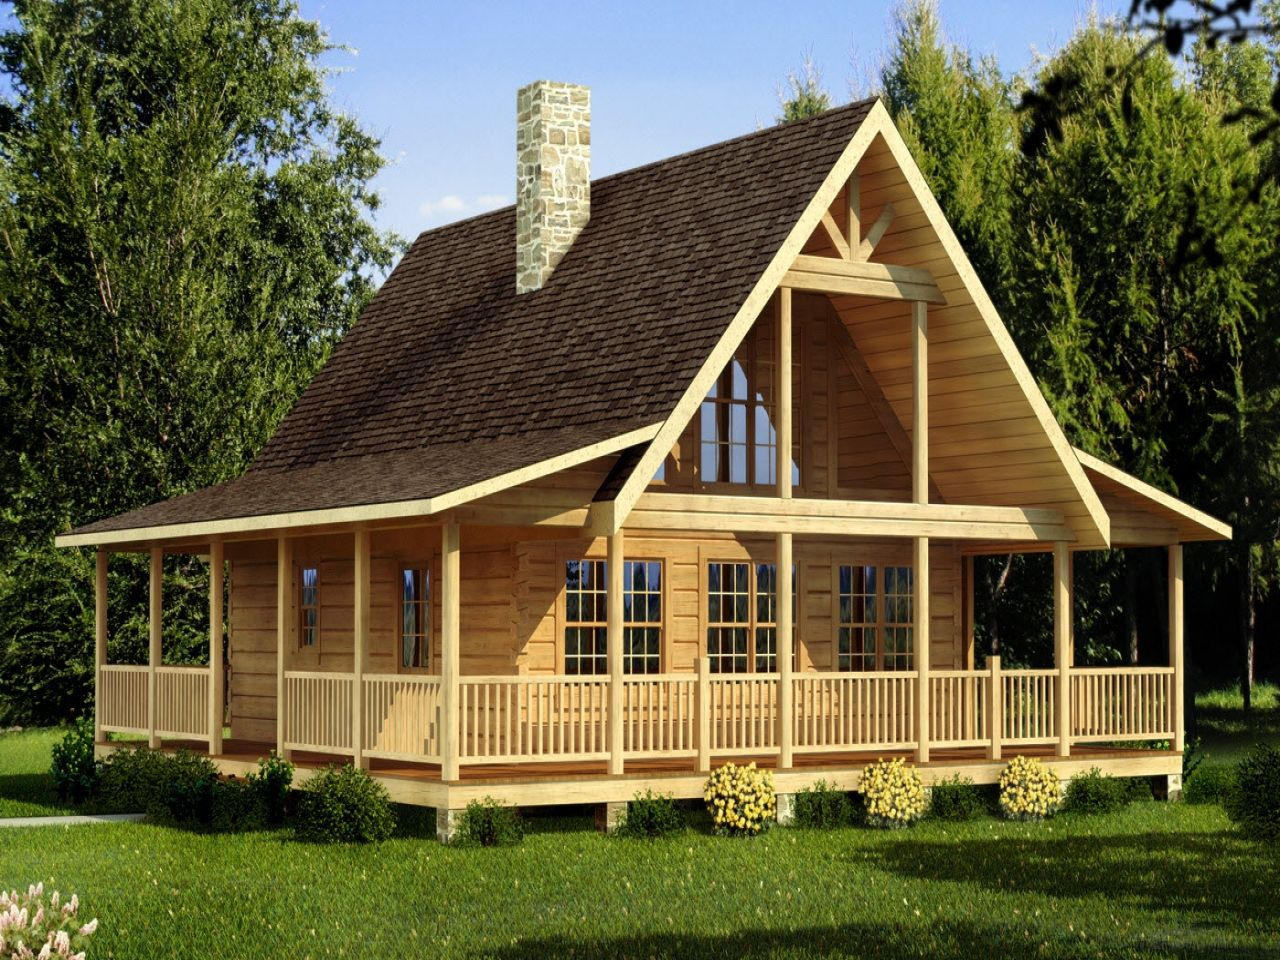 small cottage house plans Small log home plans, Log